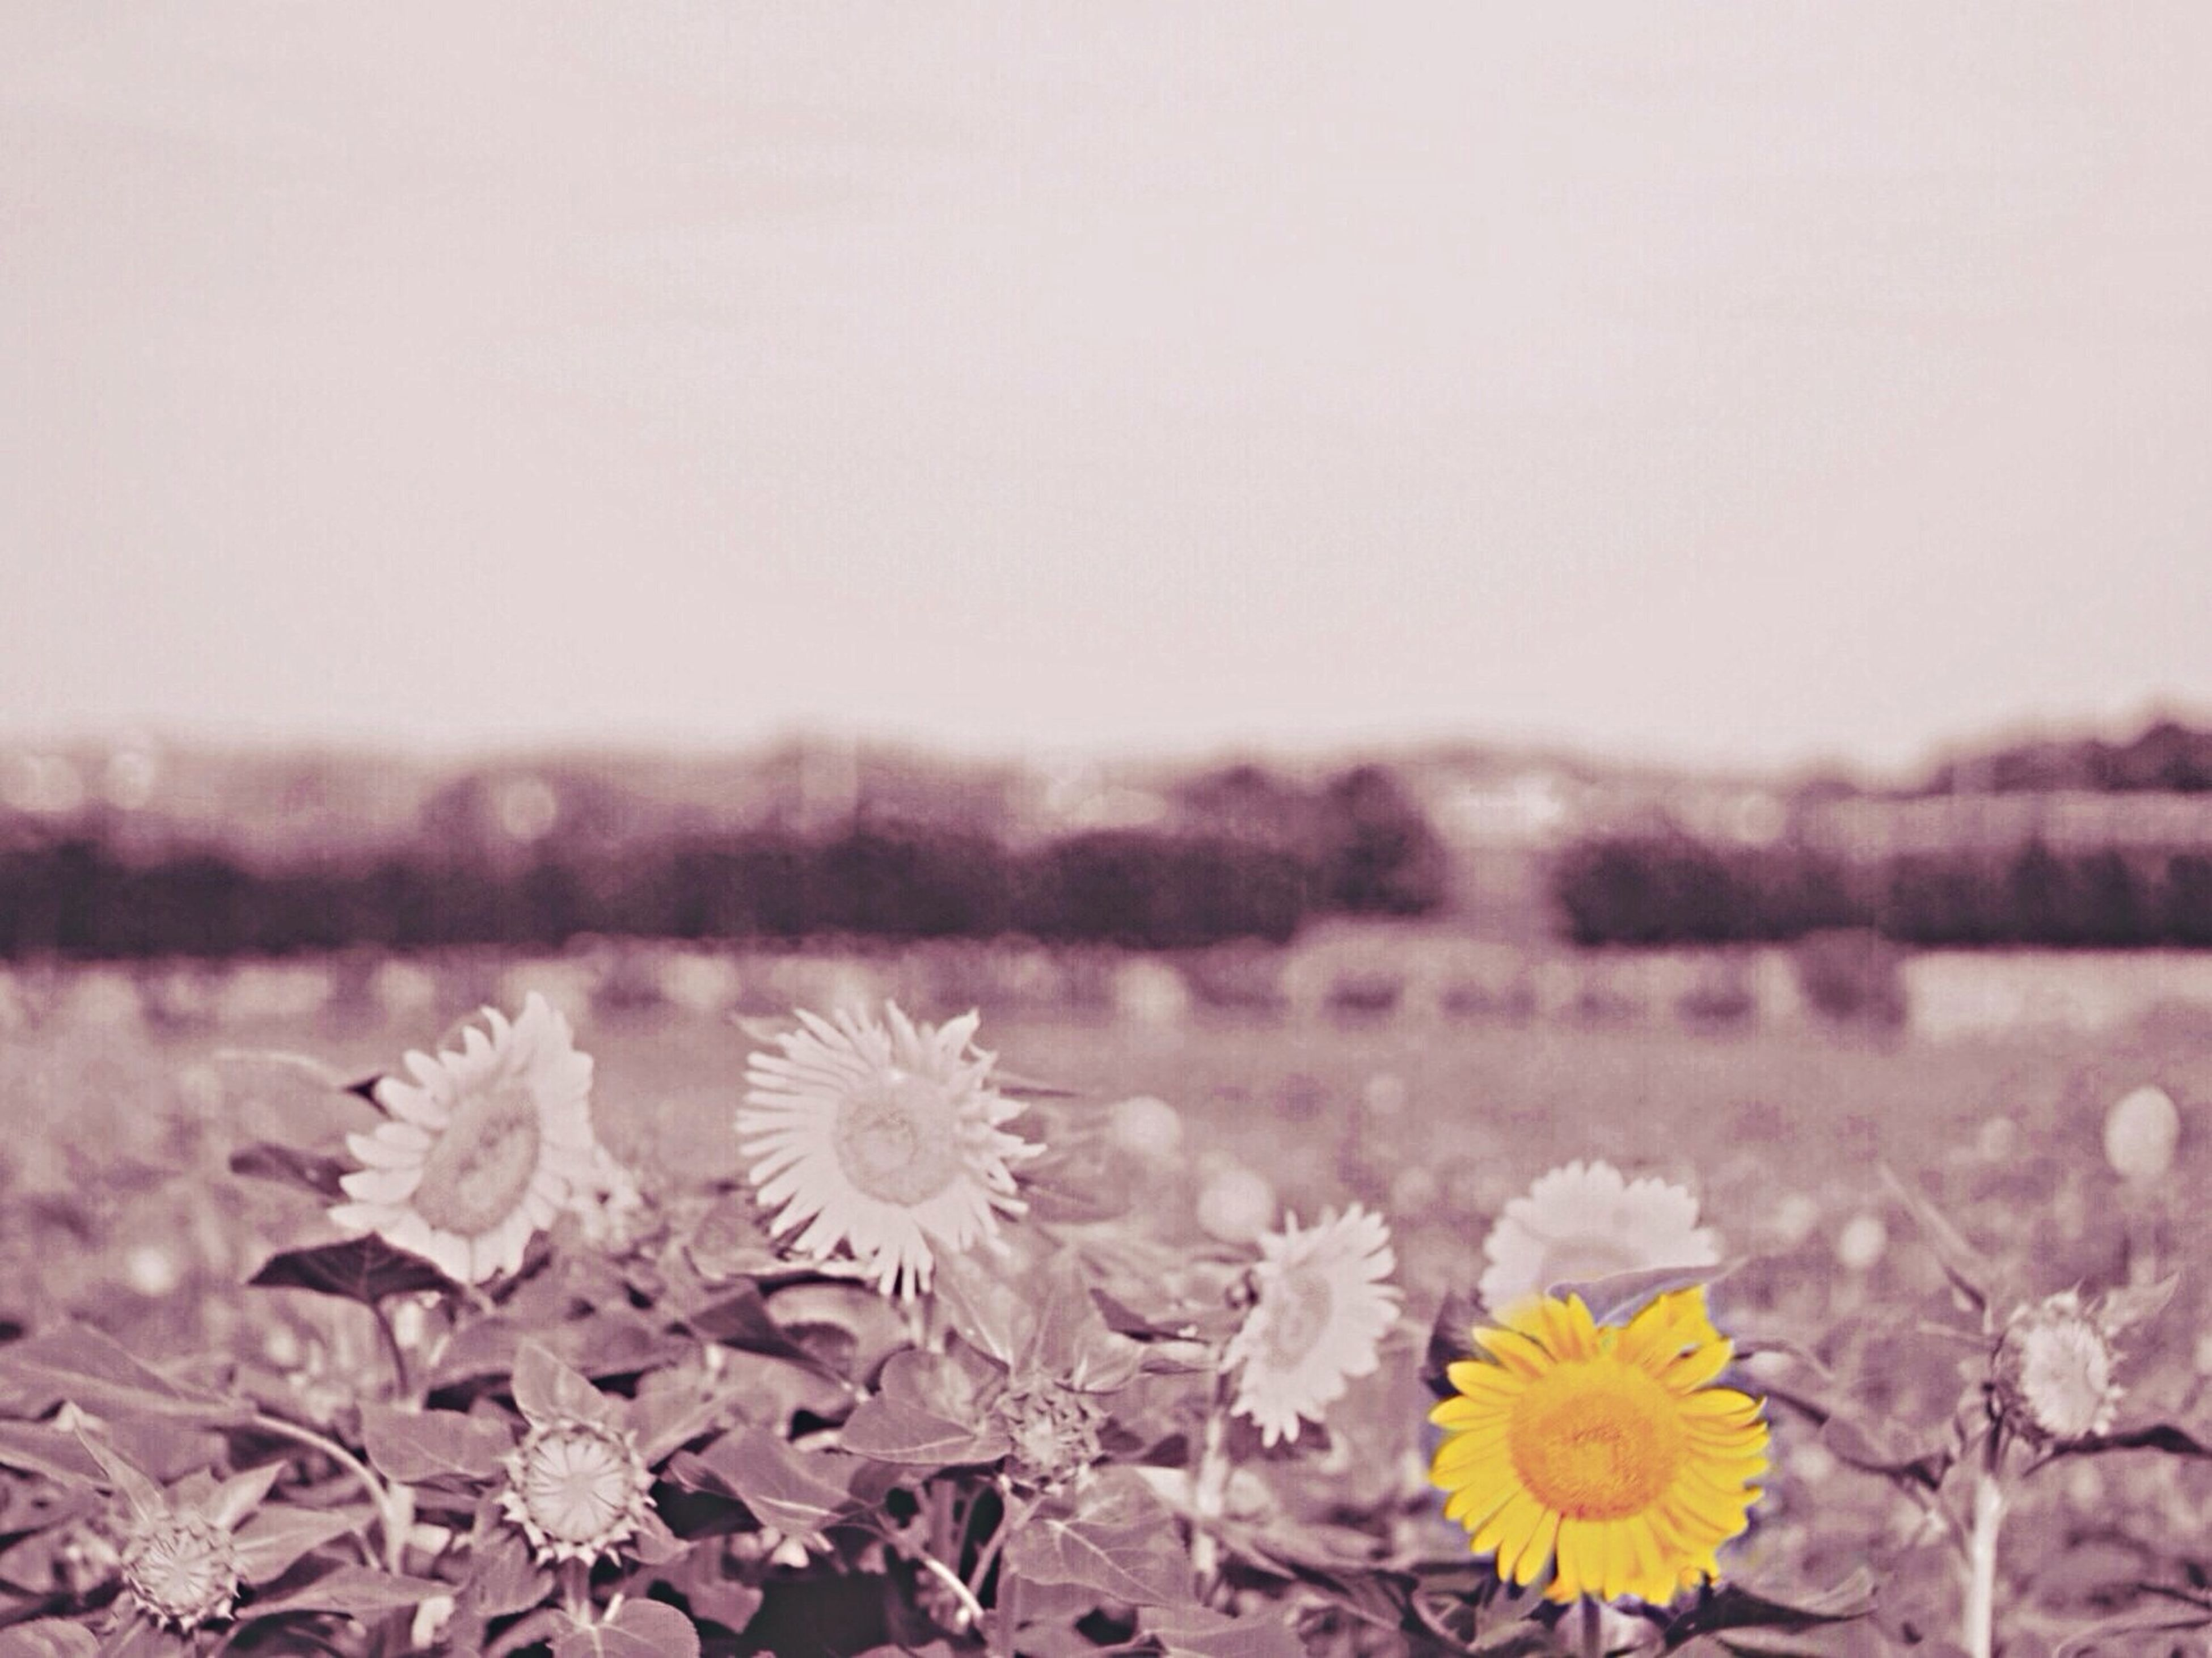 flower, clear sky, beauty in nature, nature, fragility, focus on foreground, tranquility, copy space, plant, growth, yellow, tranquil scene, field, freshness, petal, season, close-up, outdoors, day, no people